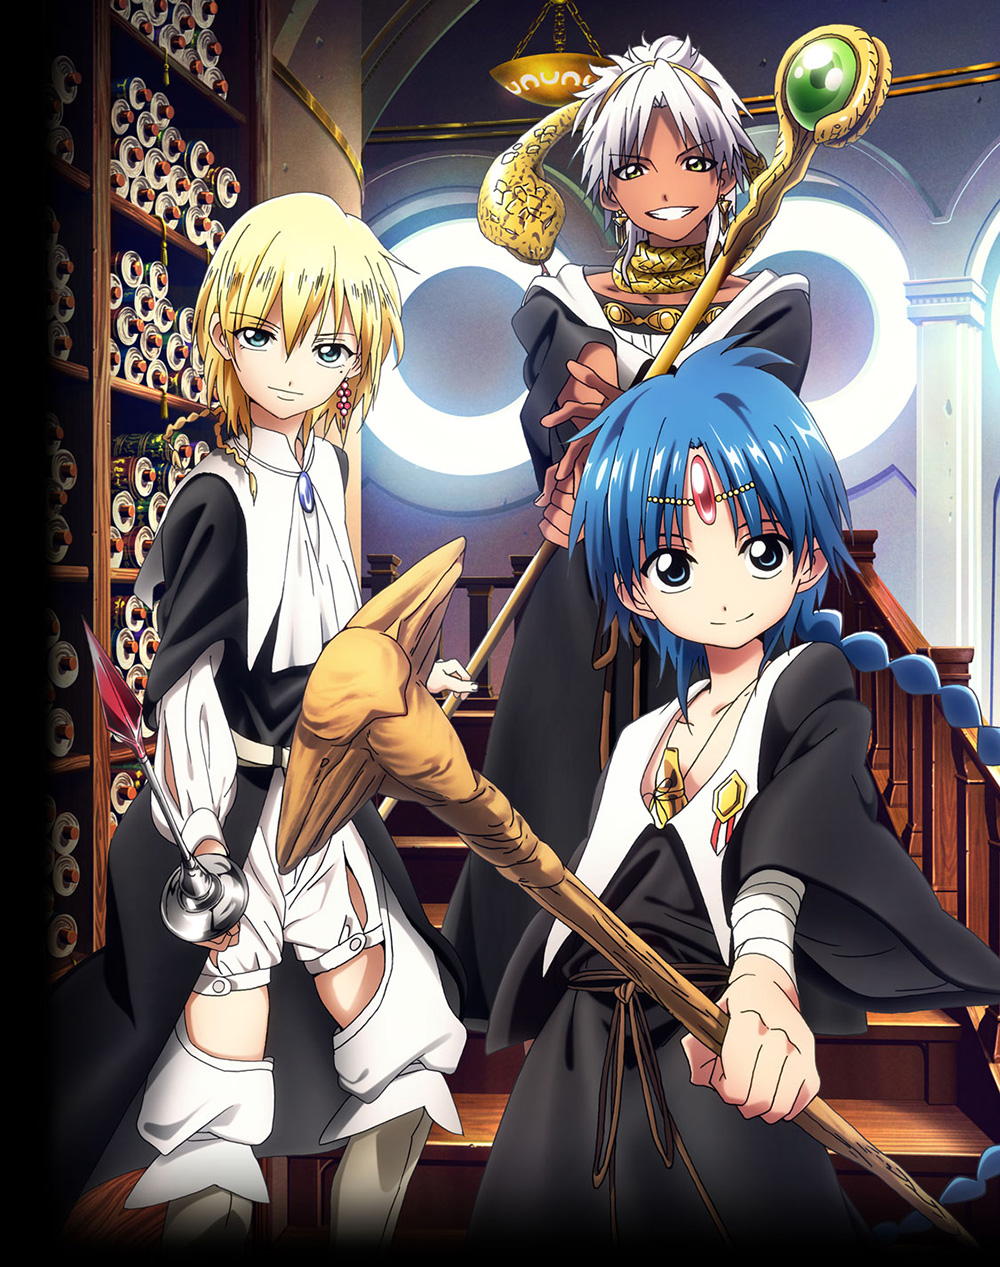 Charapedia-Females-Top-10-Anime-You-Would-Recommend-to-Others-#8-Magi-The-Labyrinth-of-Magic